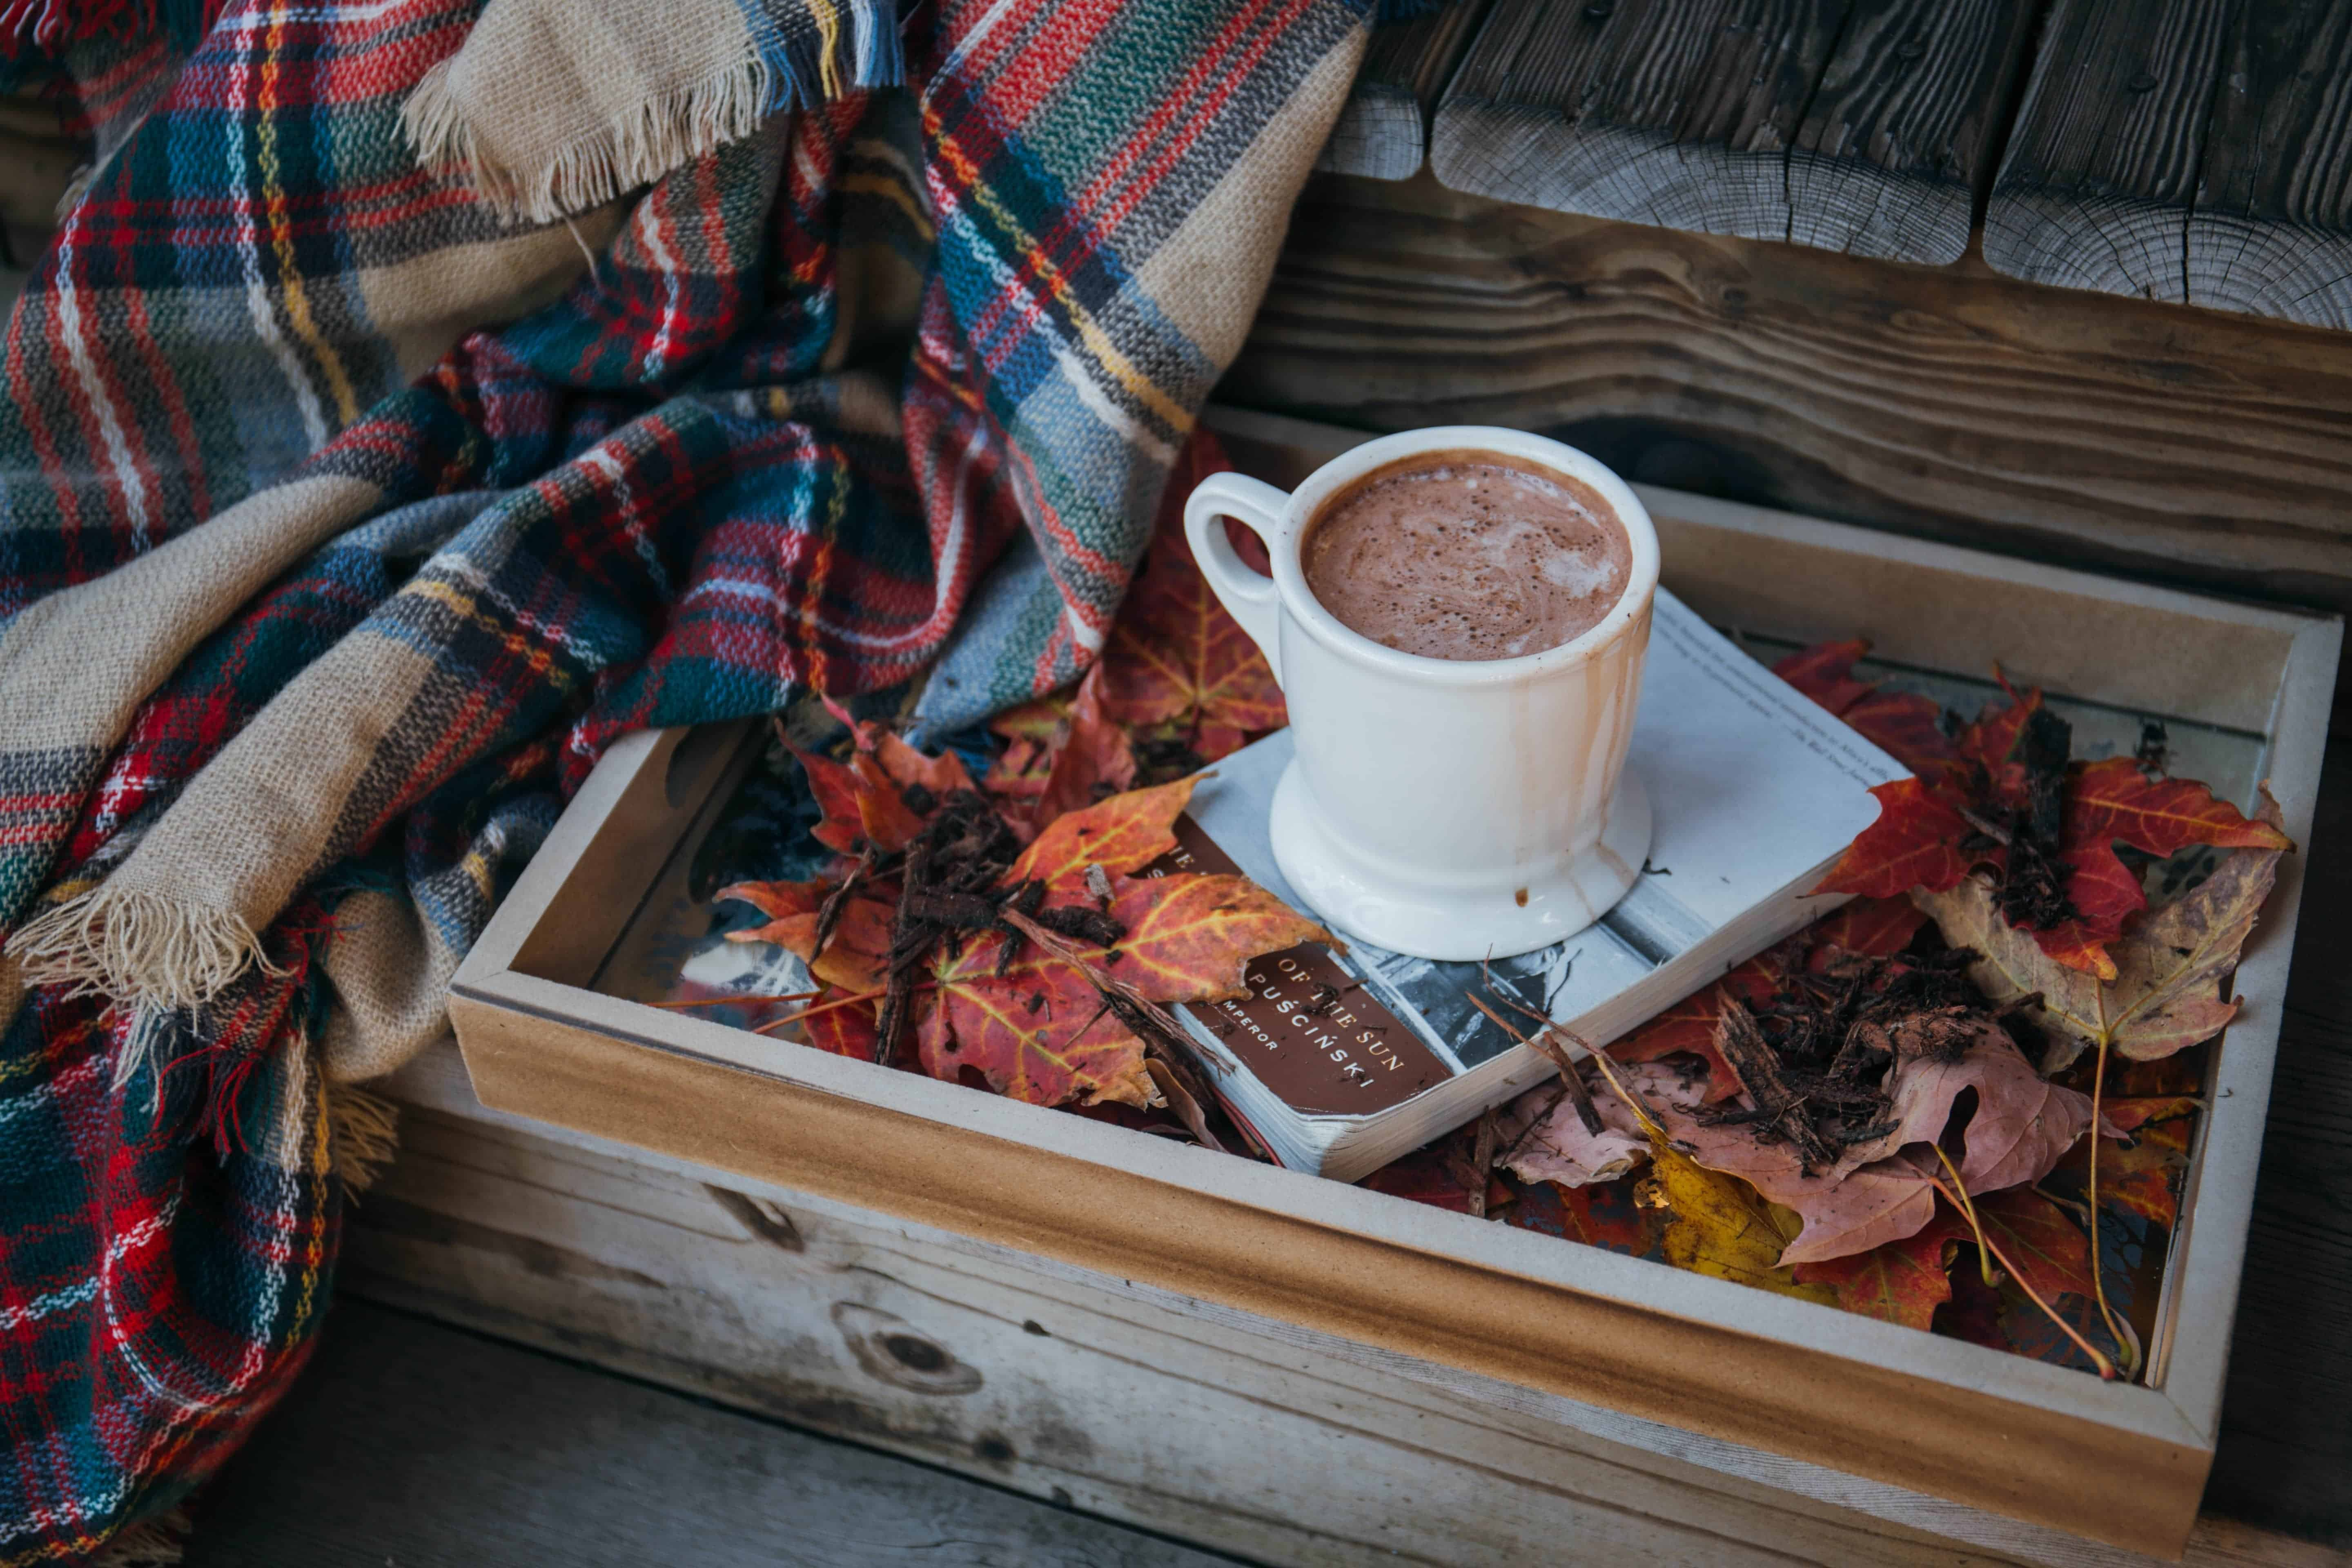 book and hot chocolate on tray with plaid throw